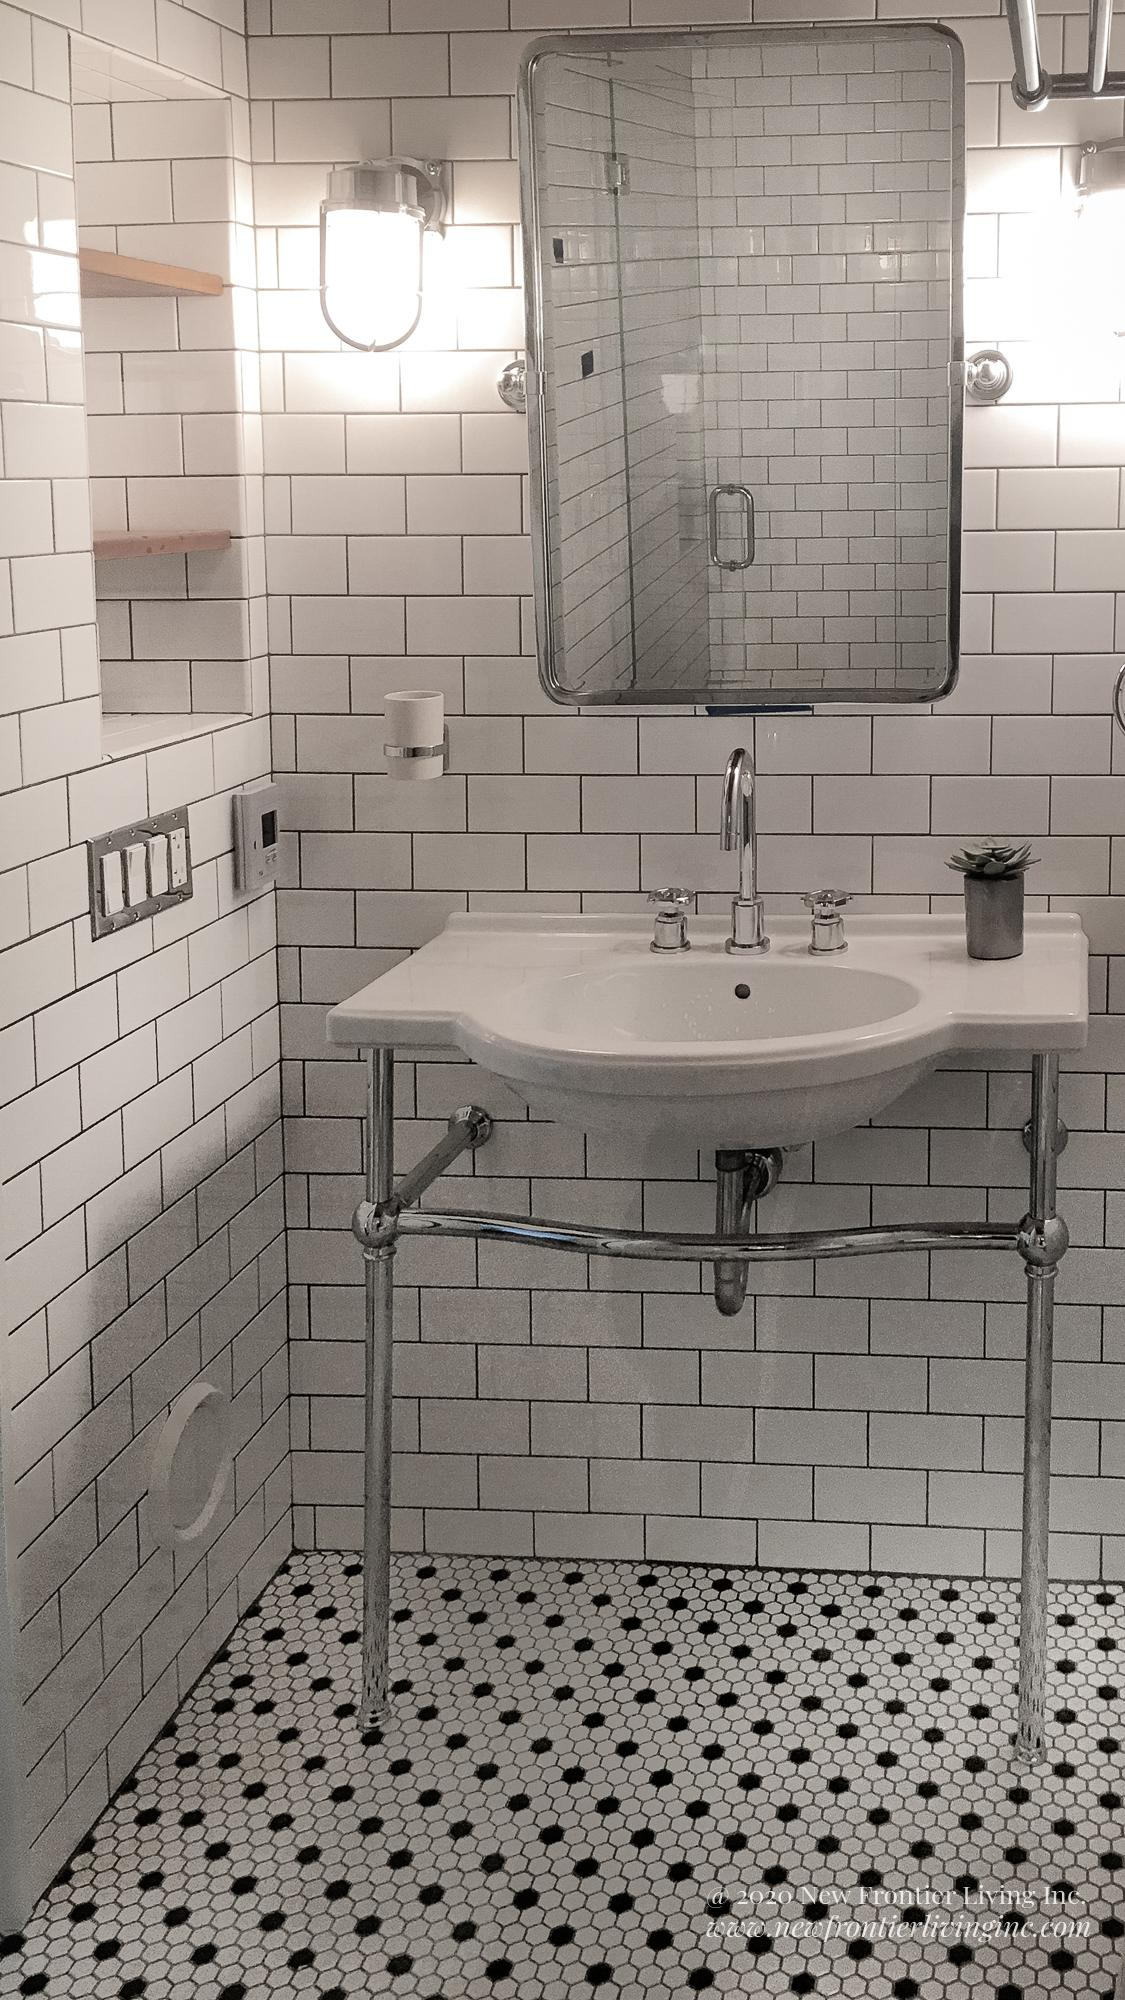 Traditional white ceramic bathroom with white and black floor tiles and console sink and a mirror